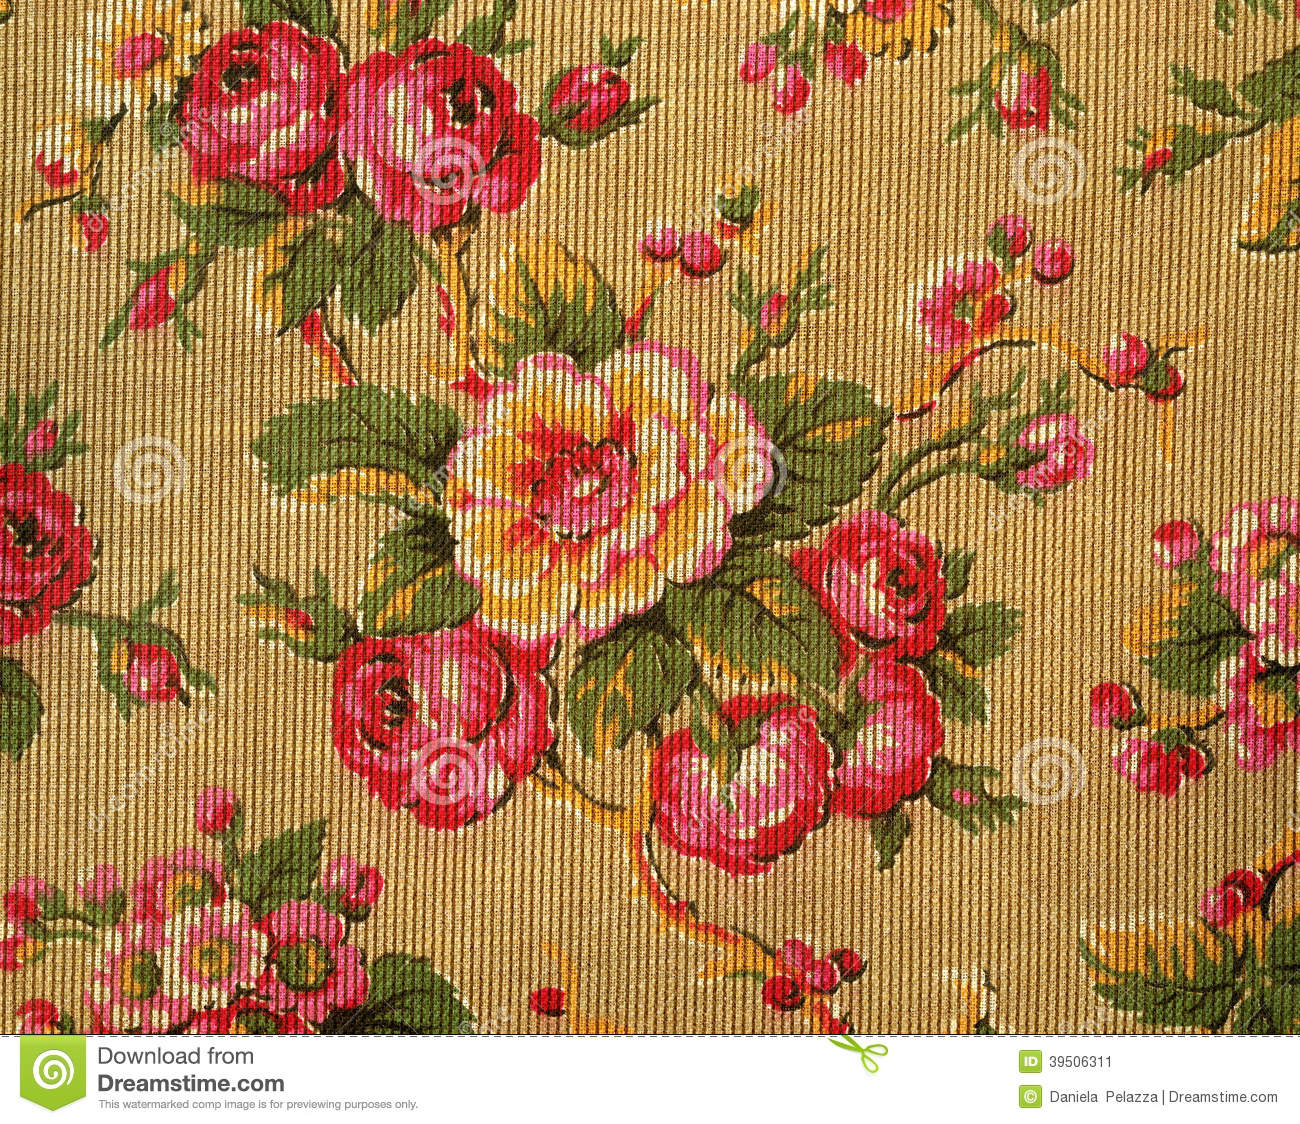 Retro tapestry with roses